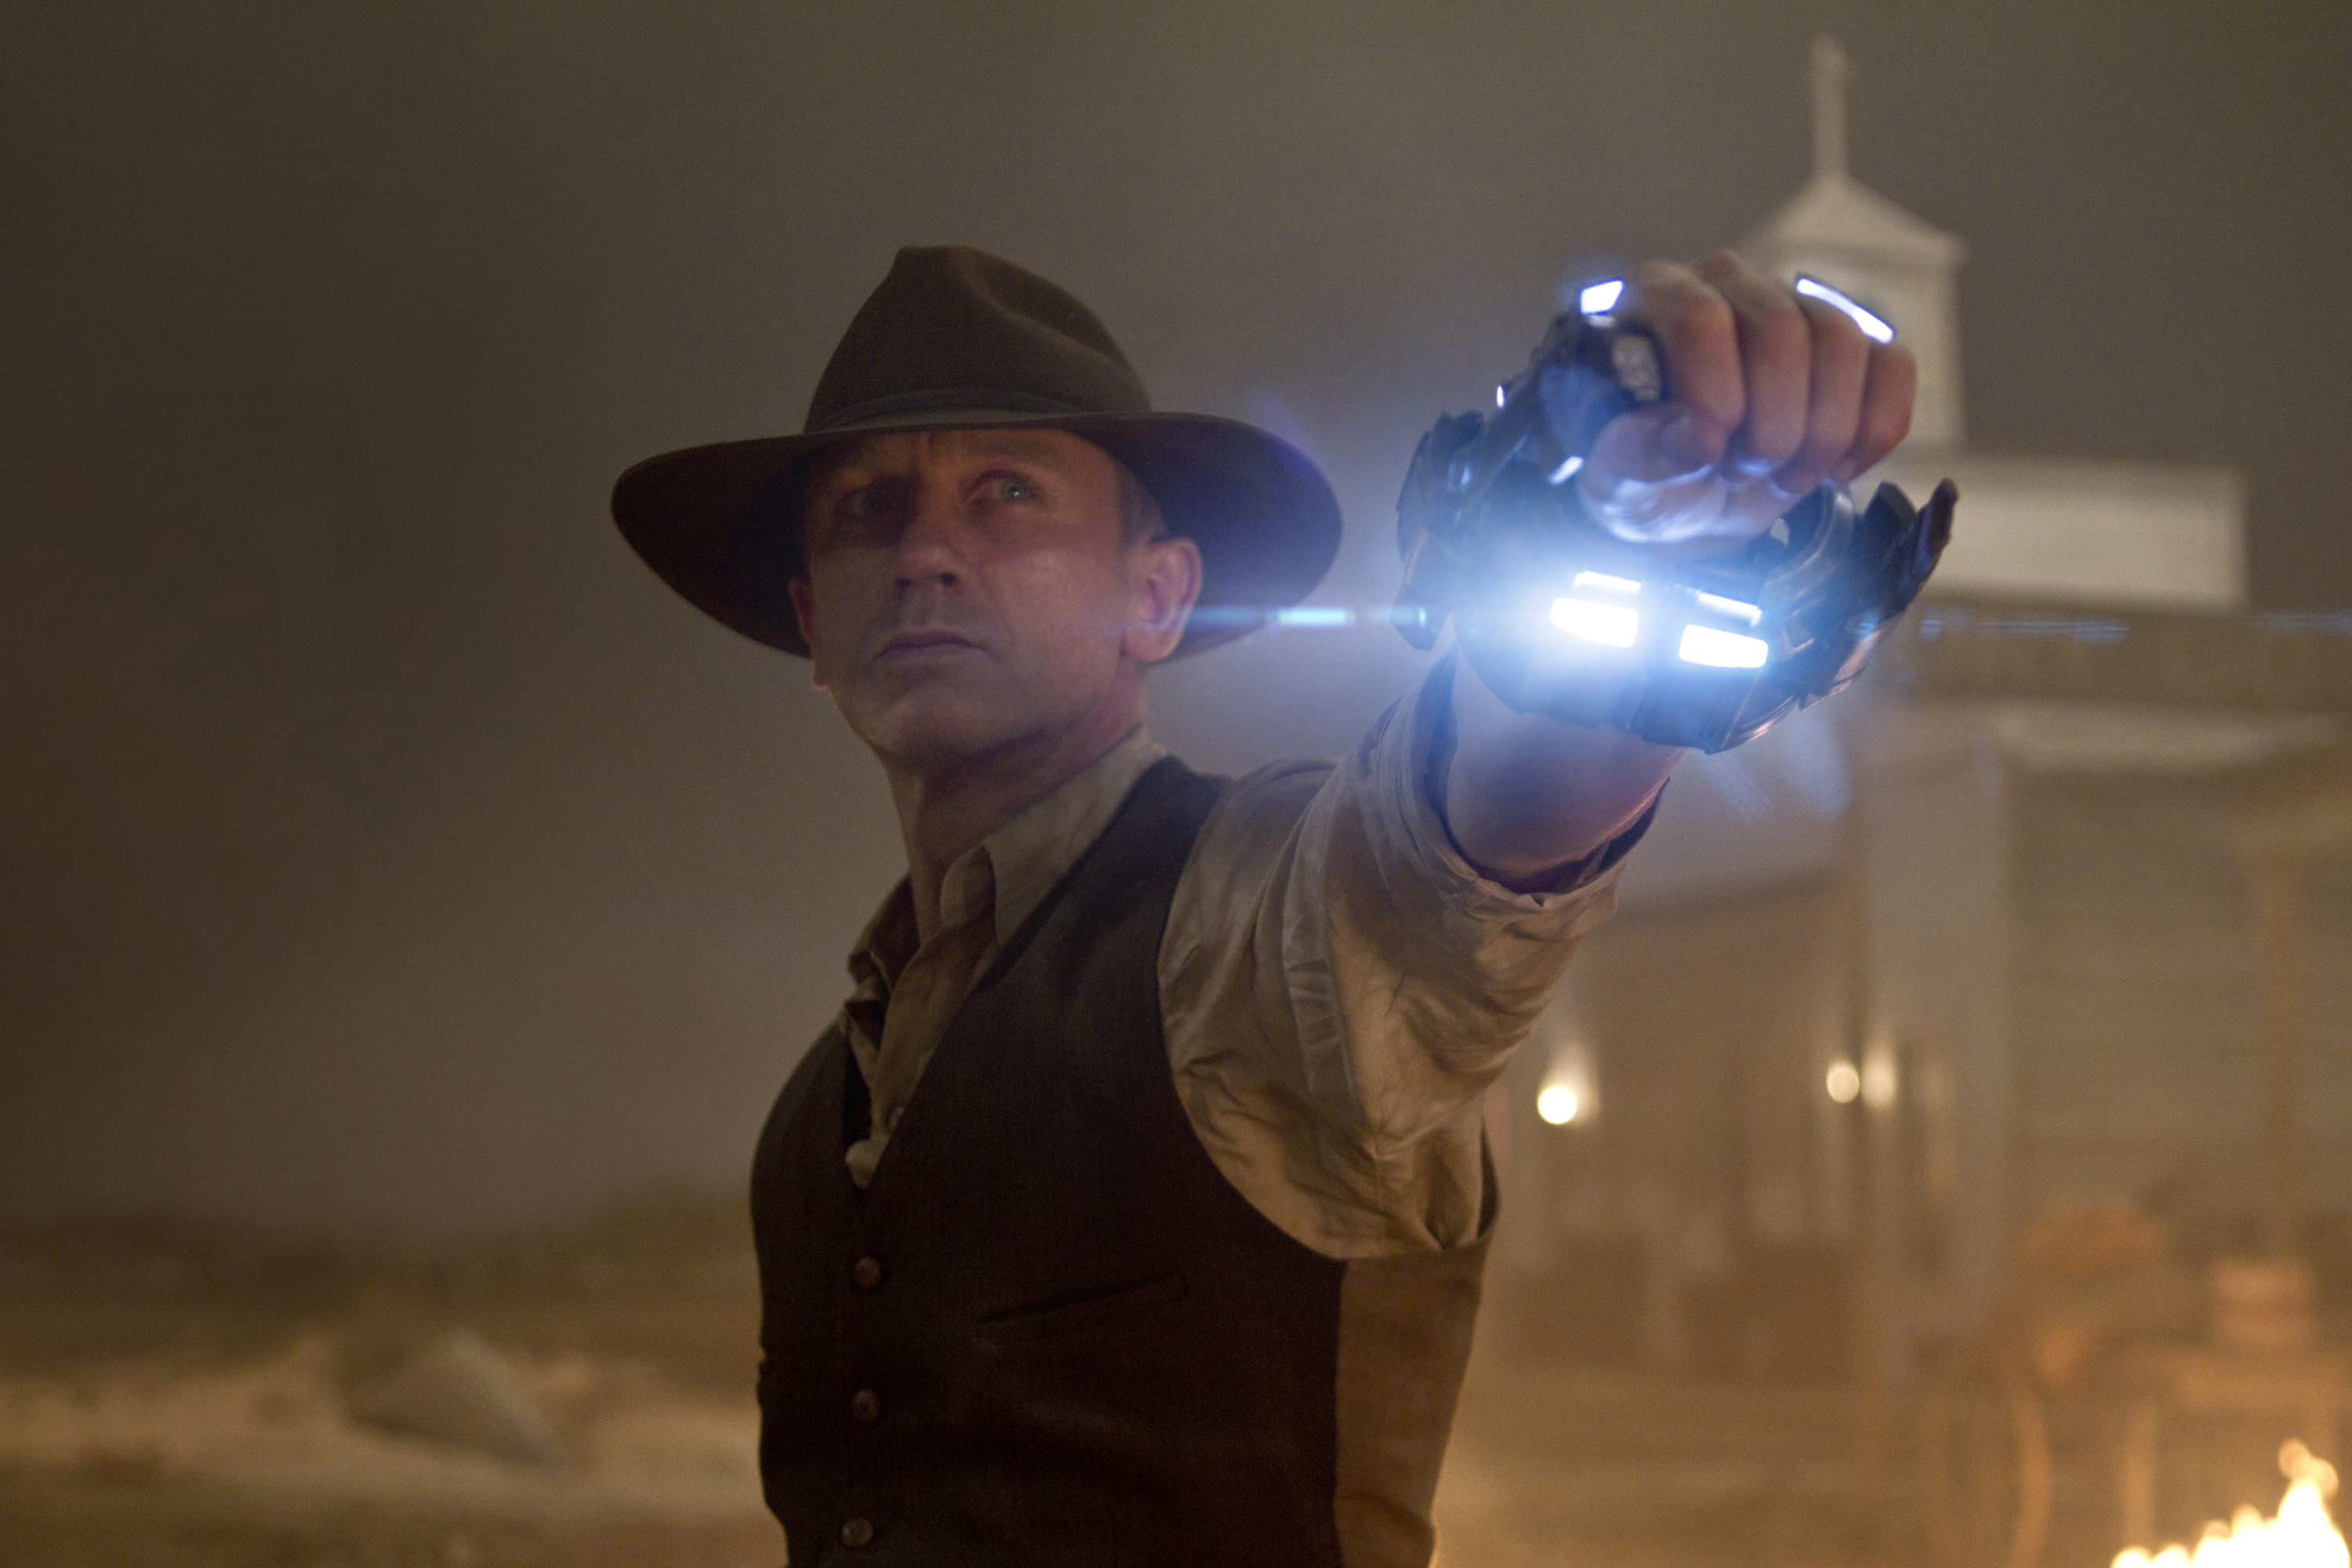 'COWBOYS & ALIENS' - Credit: Zade Rosenthal/Universal Pictures and DreamWorks II Distribution Co. LLC